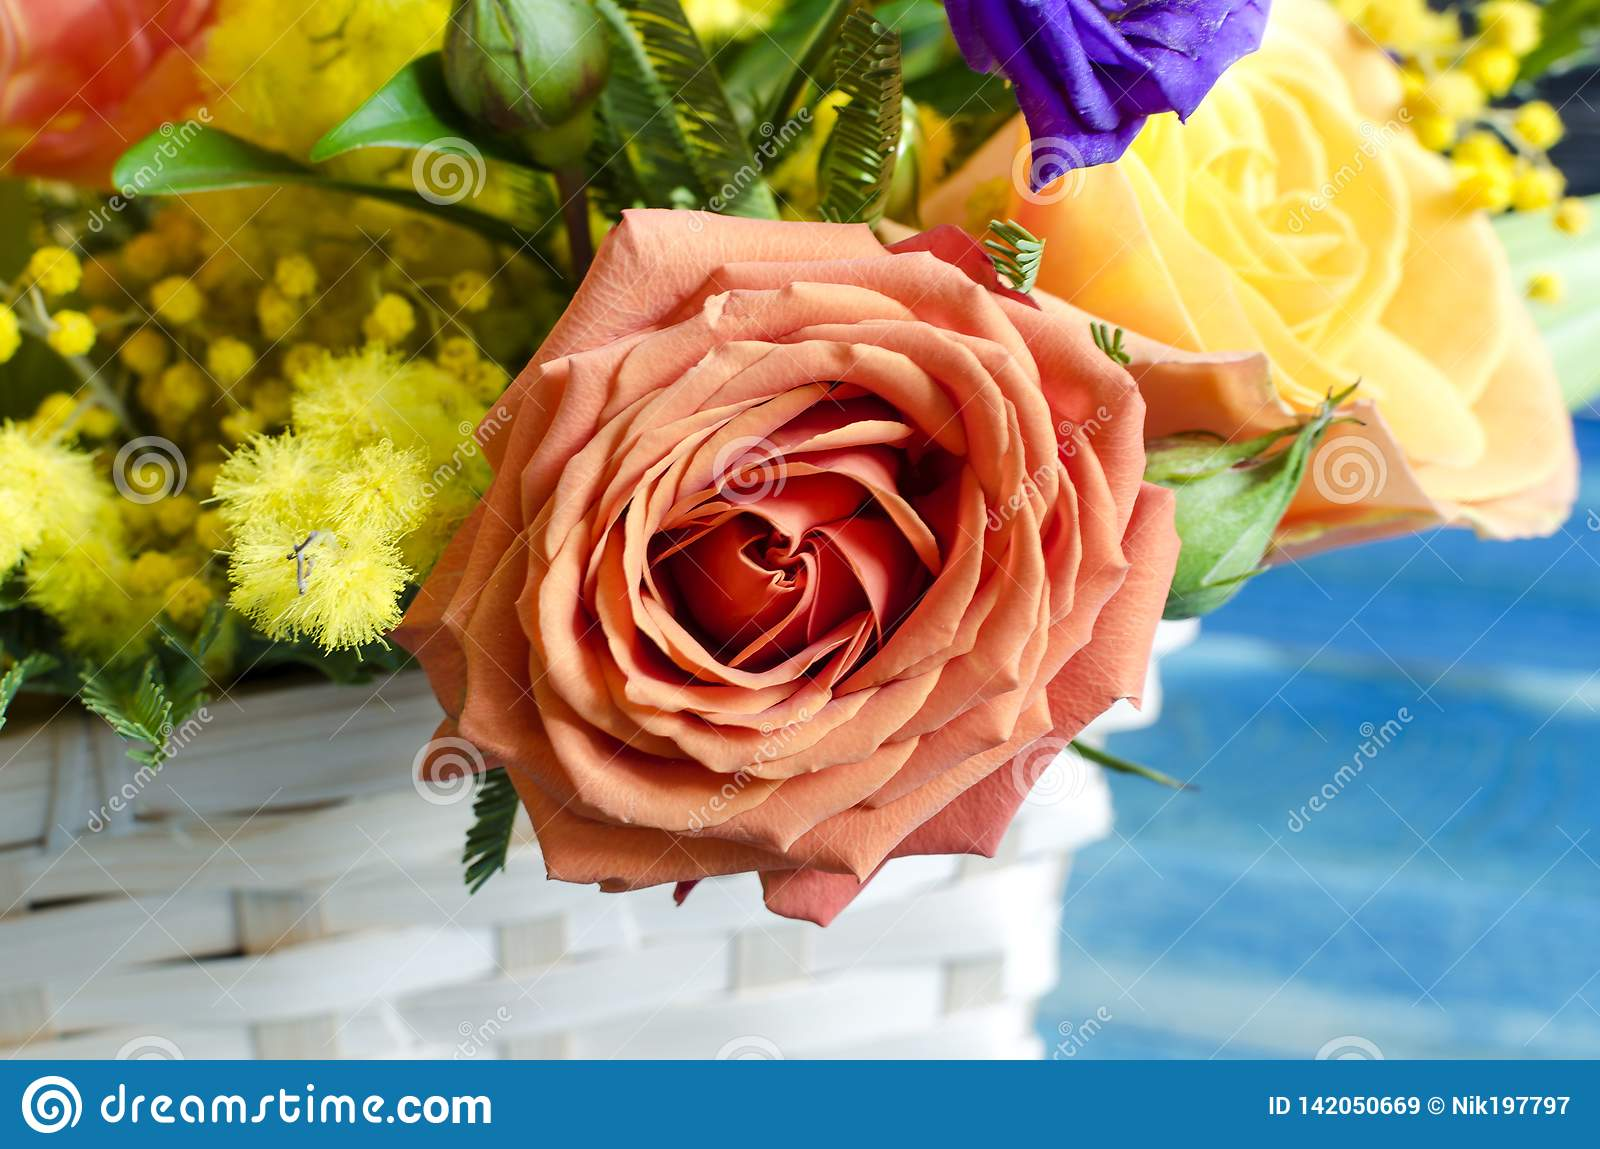 Flower Arrangement Close Up Of Fresh Flowers Of Red Yellow Blue Orange Flowers In A Wicker Basket Stock Image Image Of Green Yellow 142050669